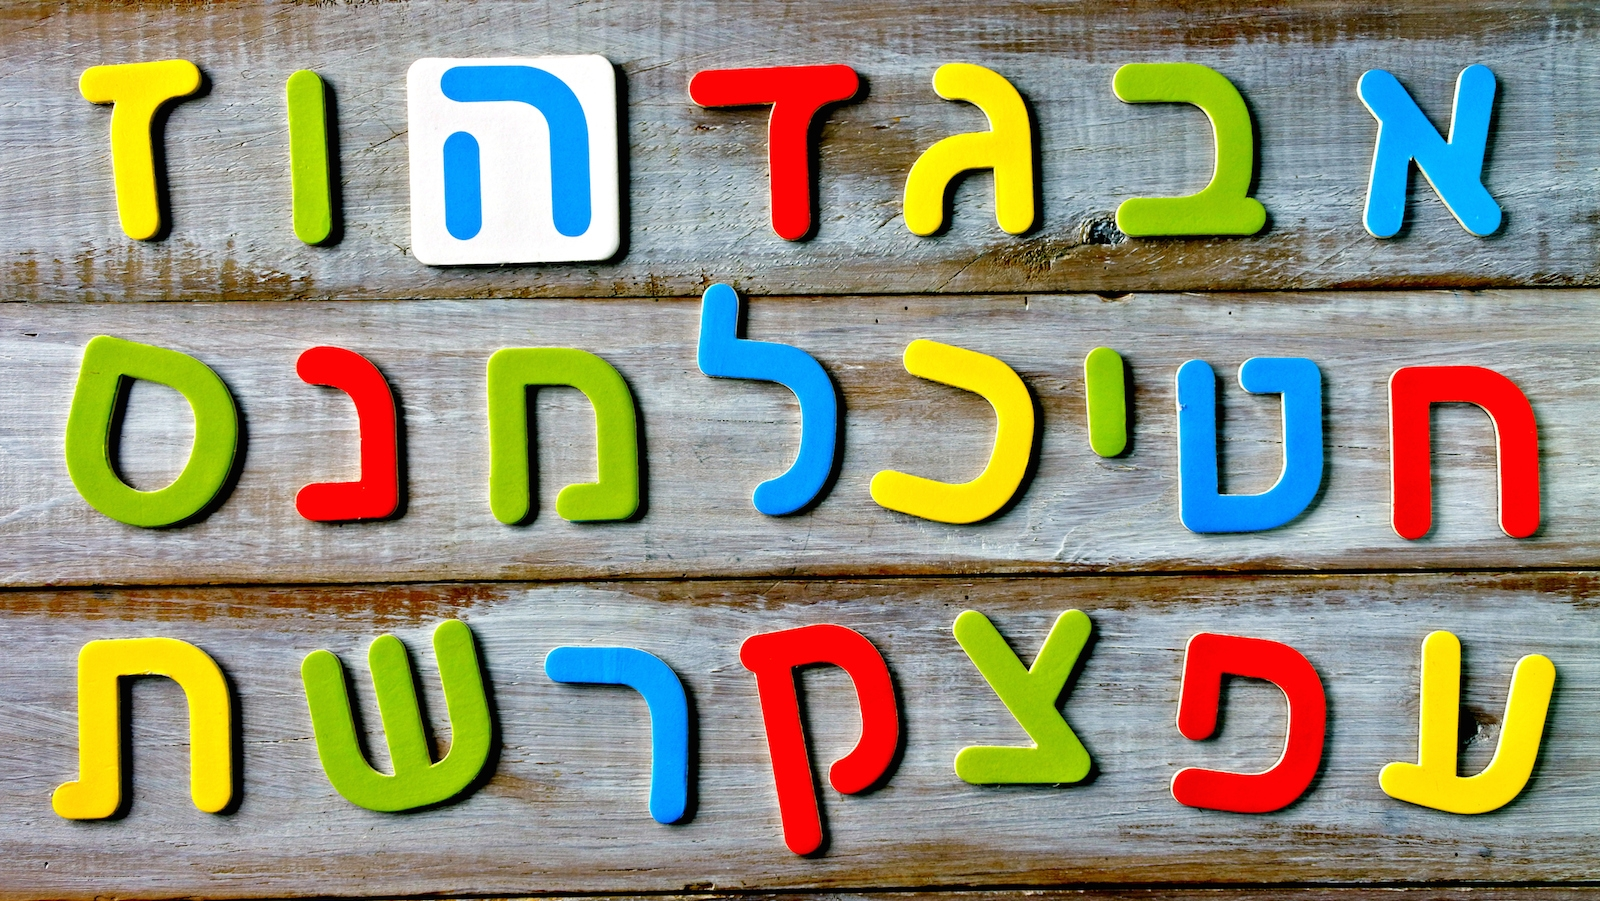 Must I Learn Hebrew? - Questions & Answers - chabad.org